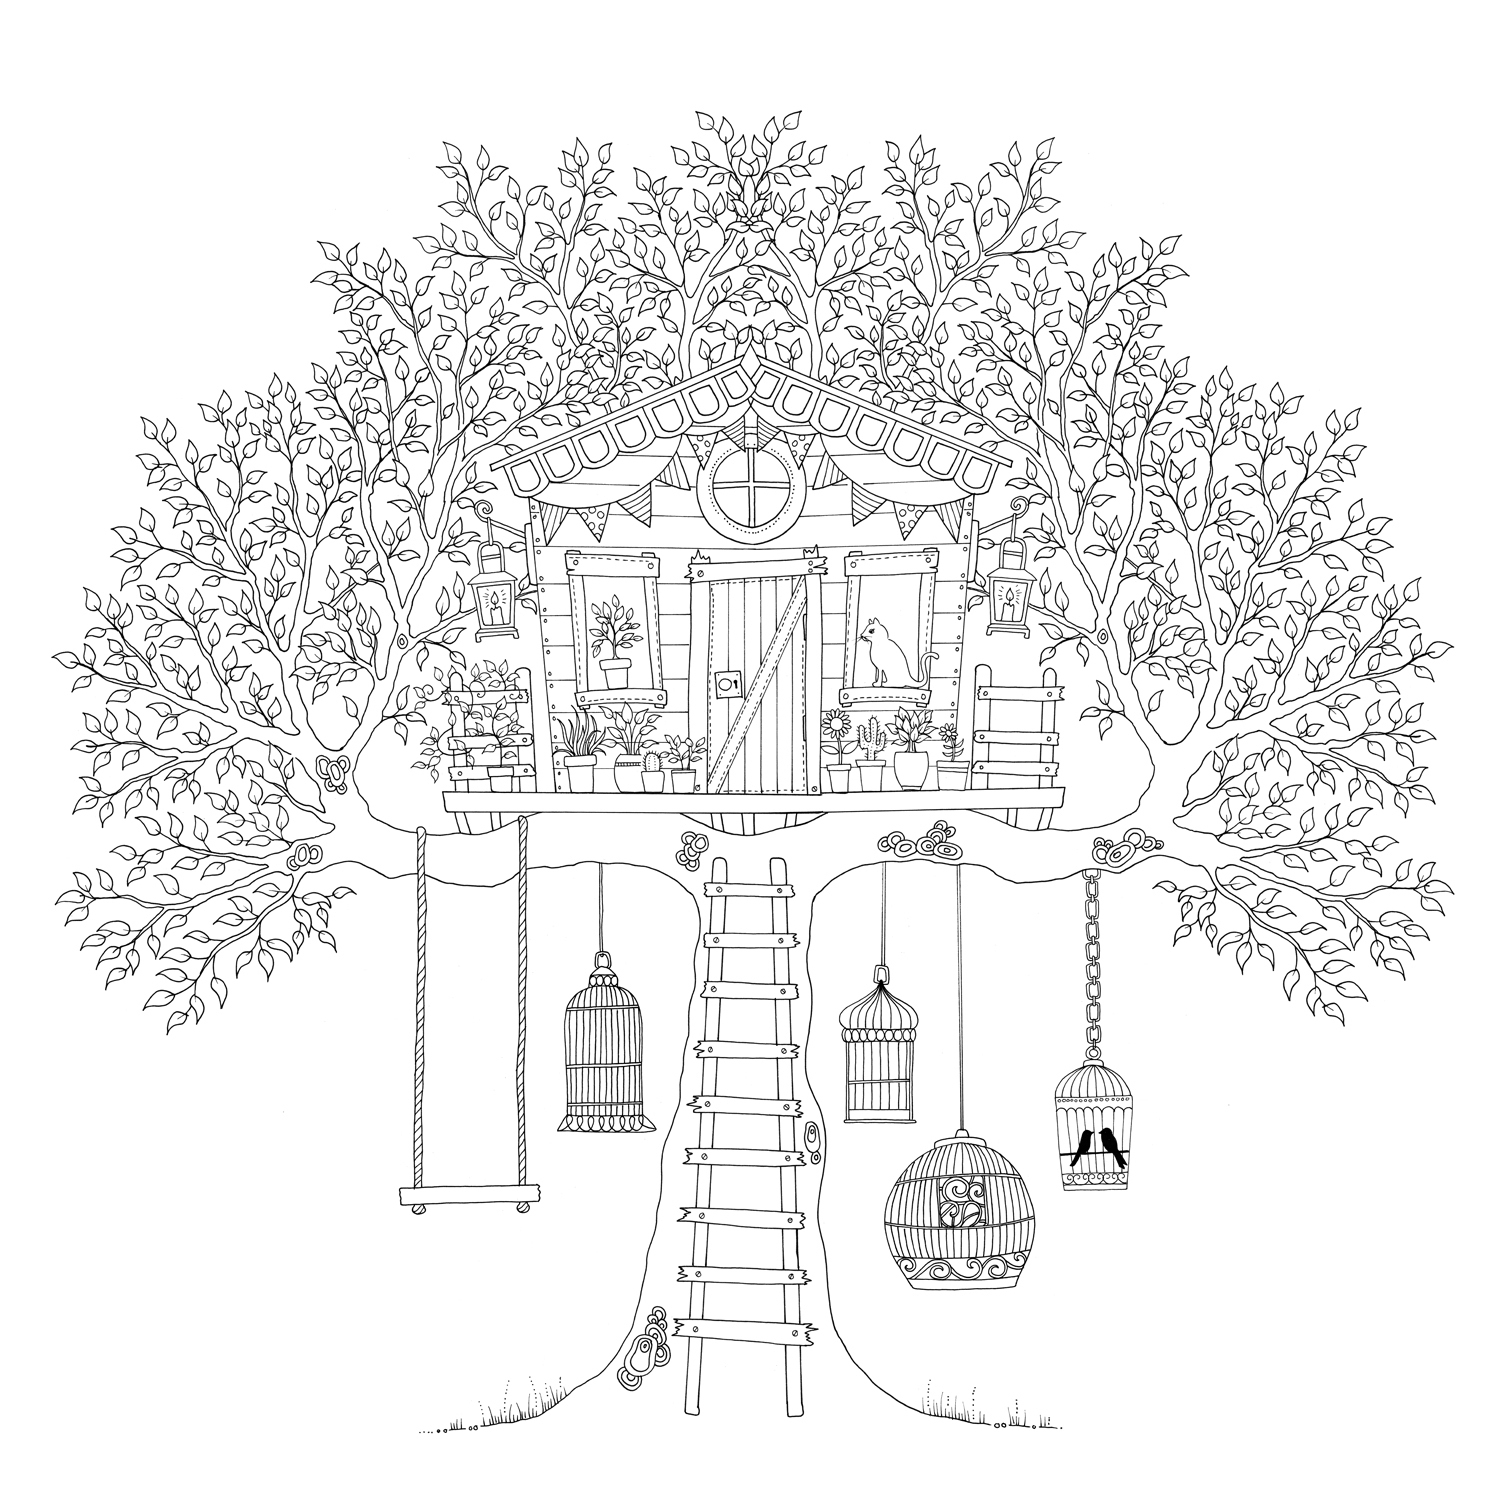 The secret garden coloring book download